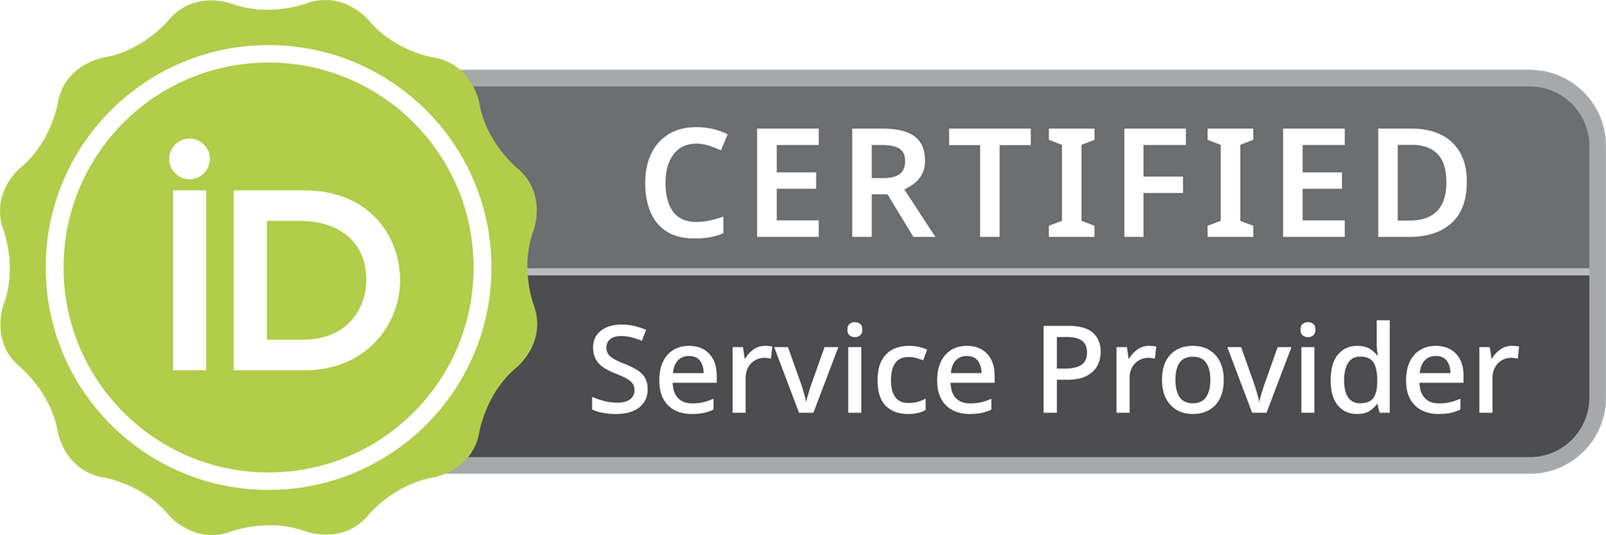 ORCID Certified Service Provider